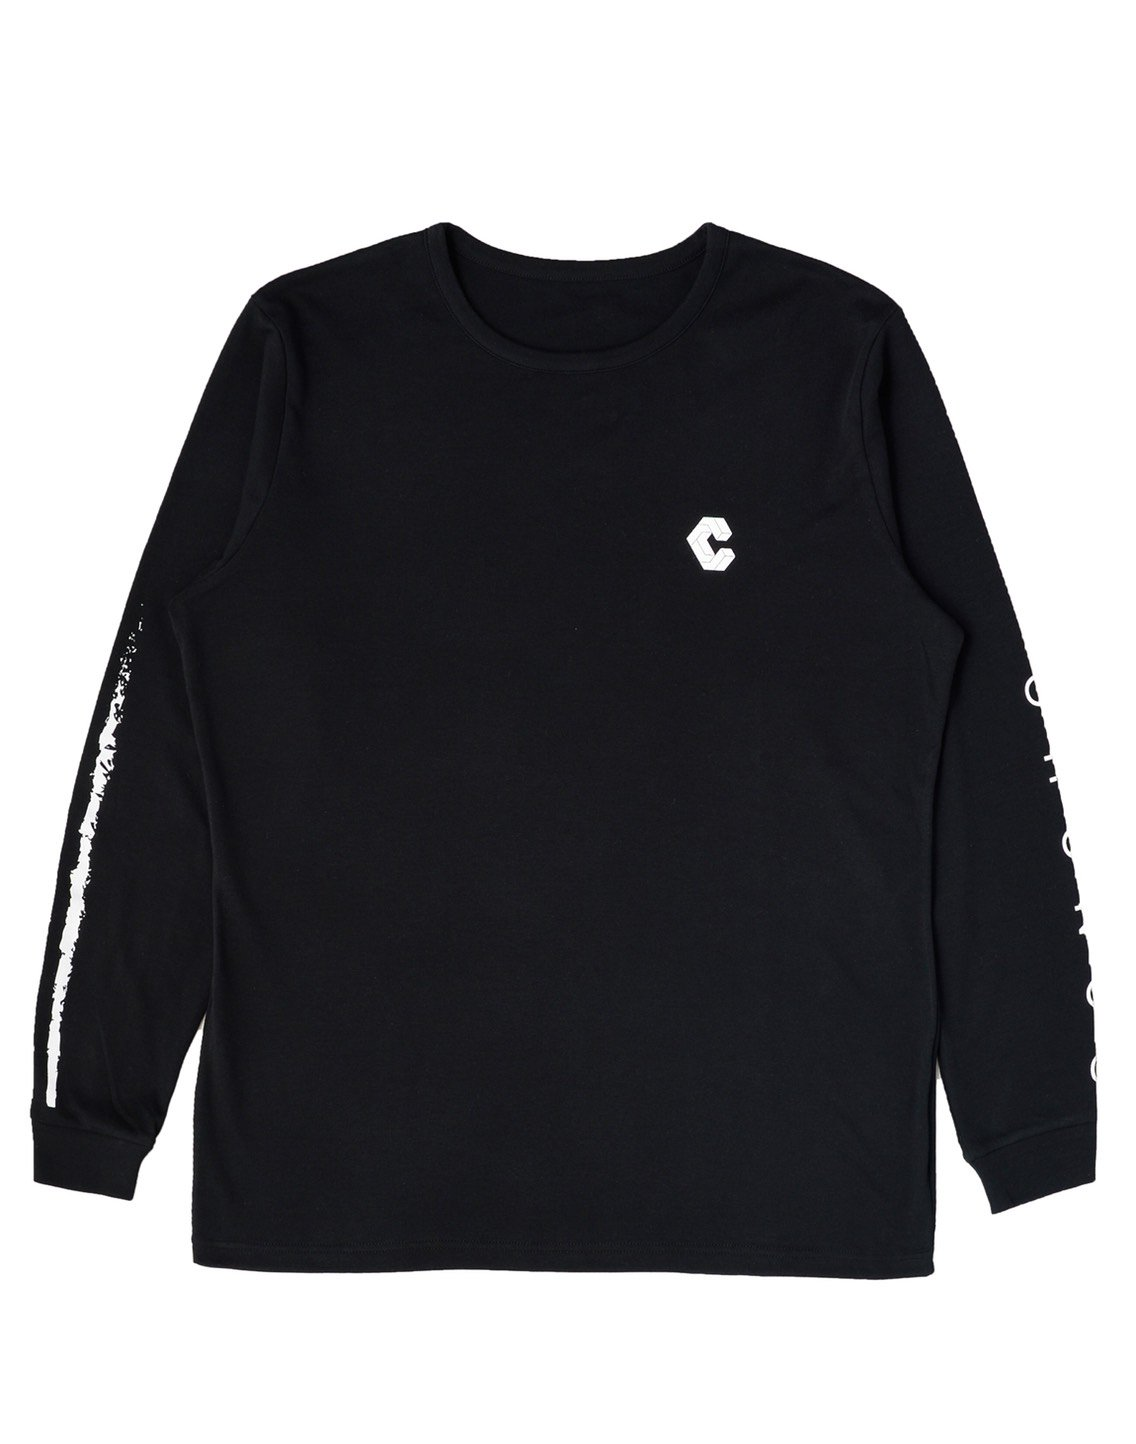 <img class='new_mark_img1' src='https://img.shop-pro.jp/img/new/icons1.gif' style='border:none;display:inline;margin:0px;padding:0px;width:auto;' />CRONOS NEW ARM LOGO LONG SLEEVE【BLACK】